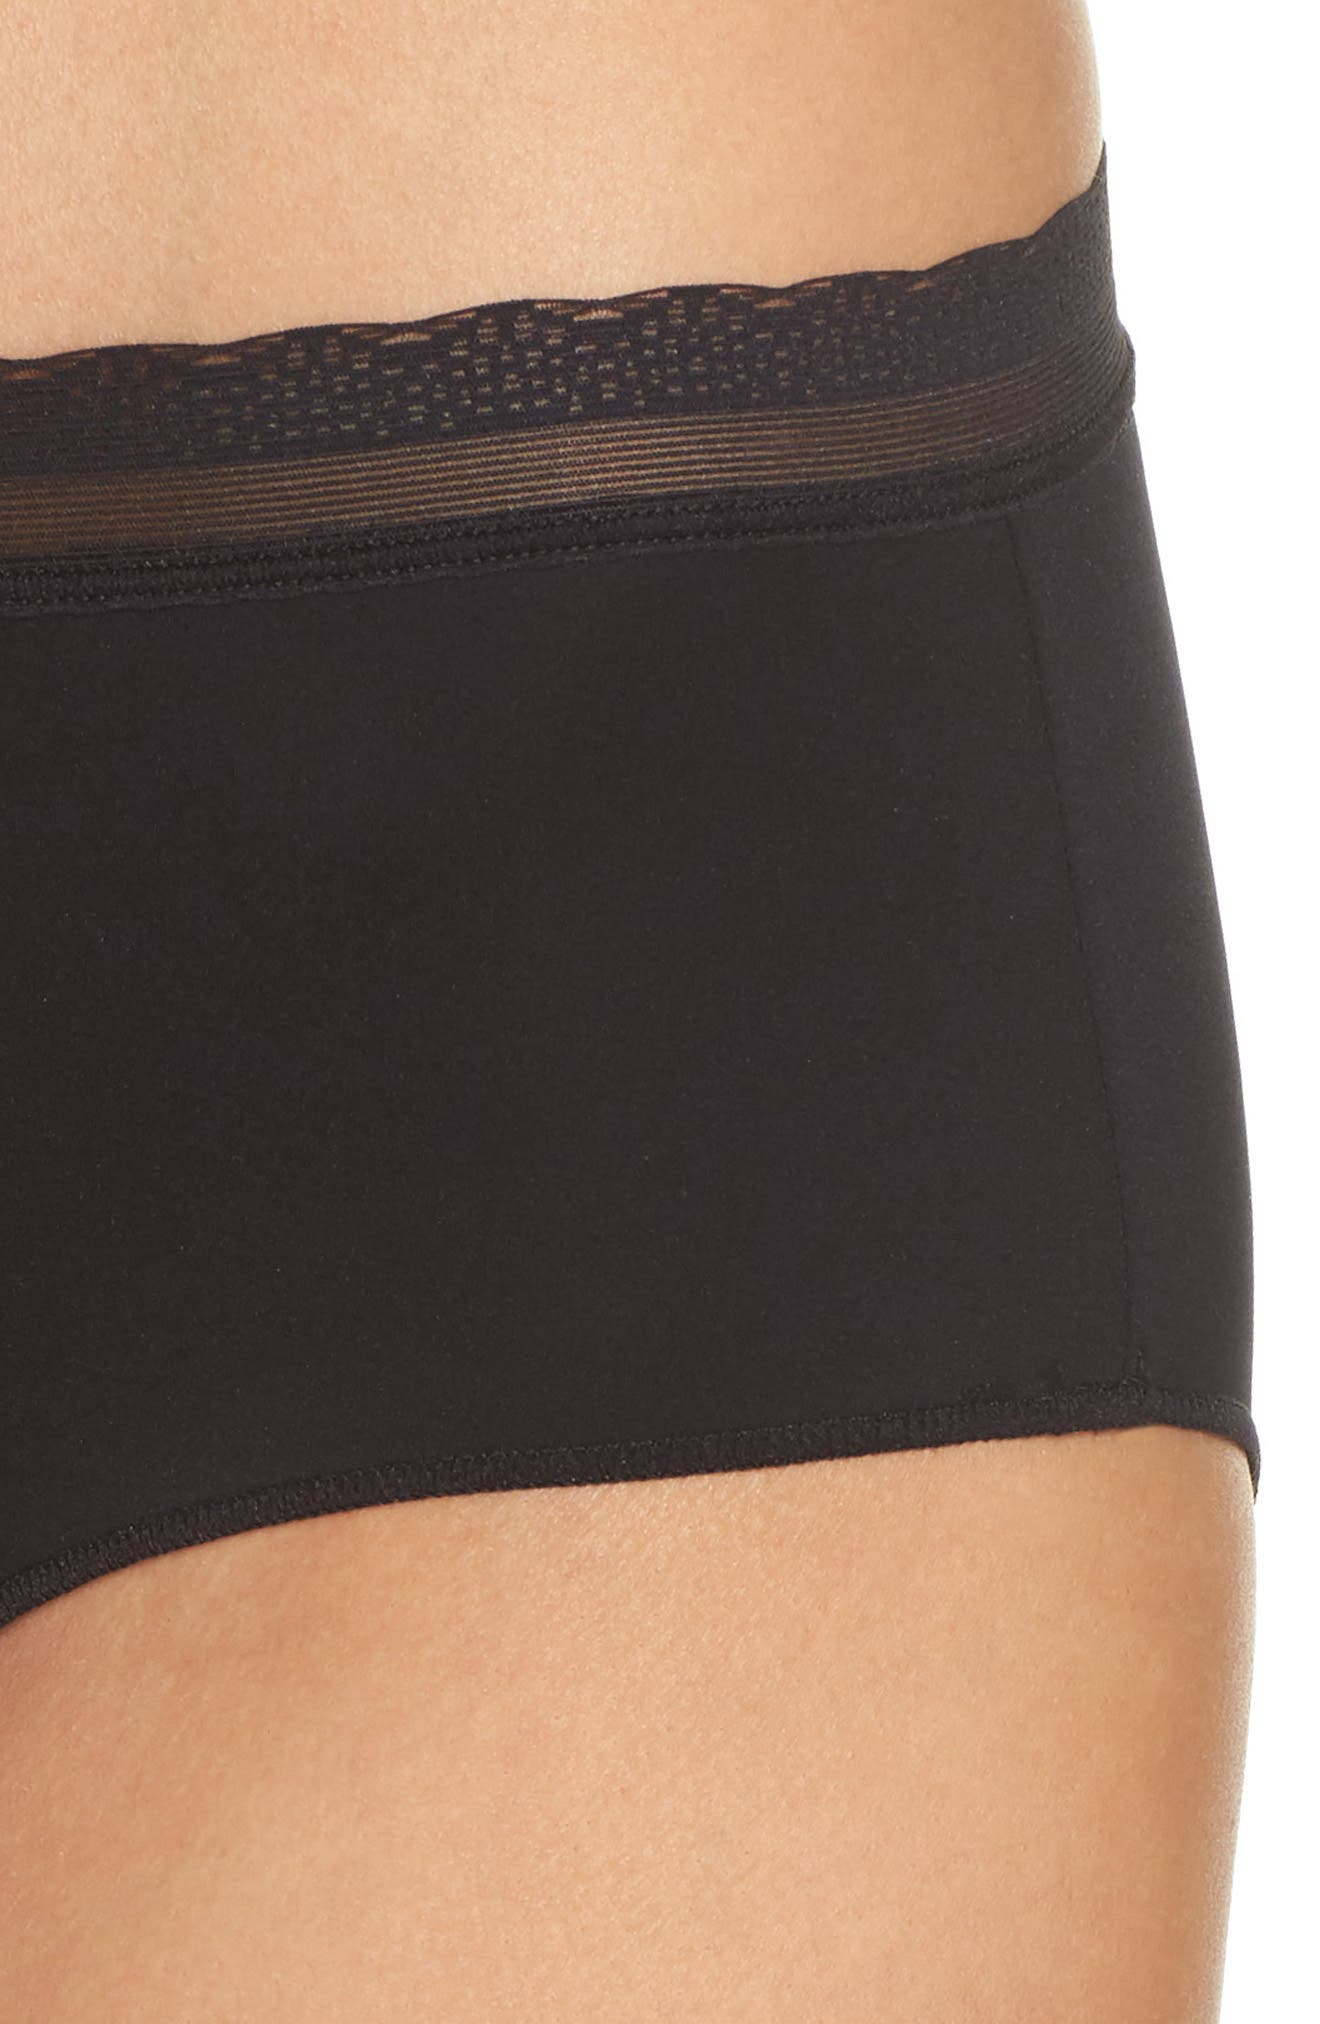 Next to Nothing Hipster Briefs,                             Alternate thumbnail 4, color,                             BLACK